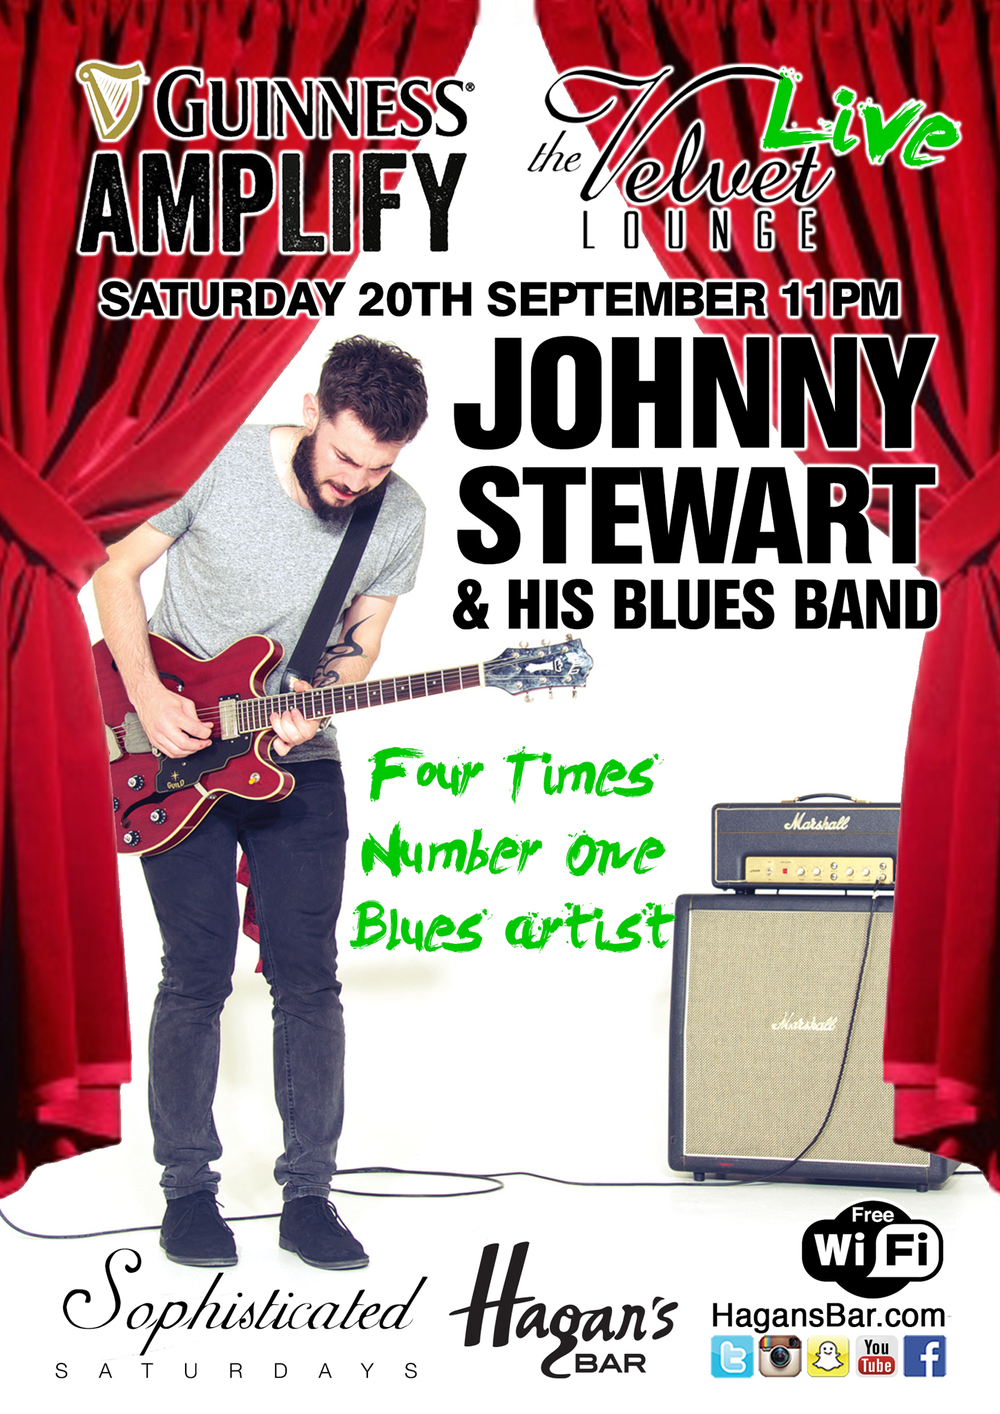 Johnny Stewart & His Band LIVE Saturday 20th September